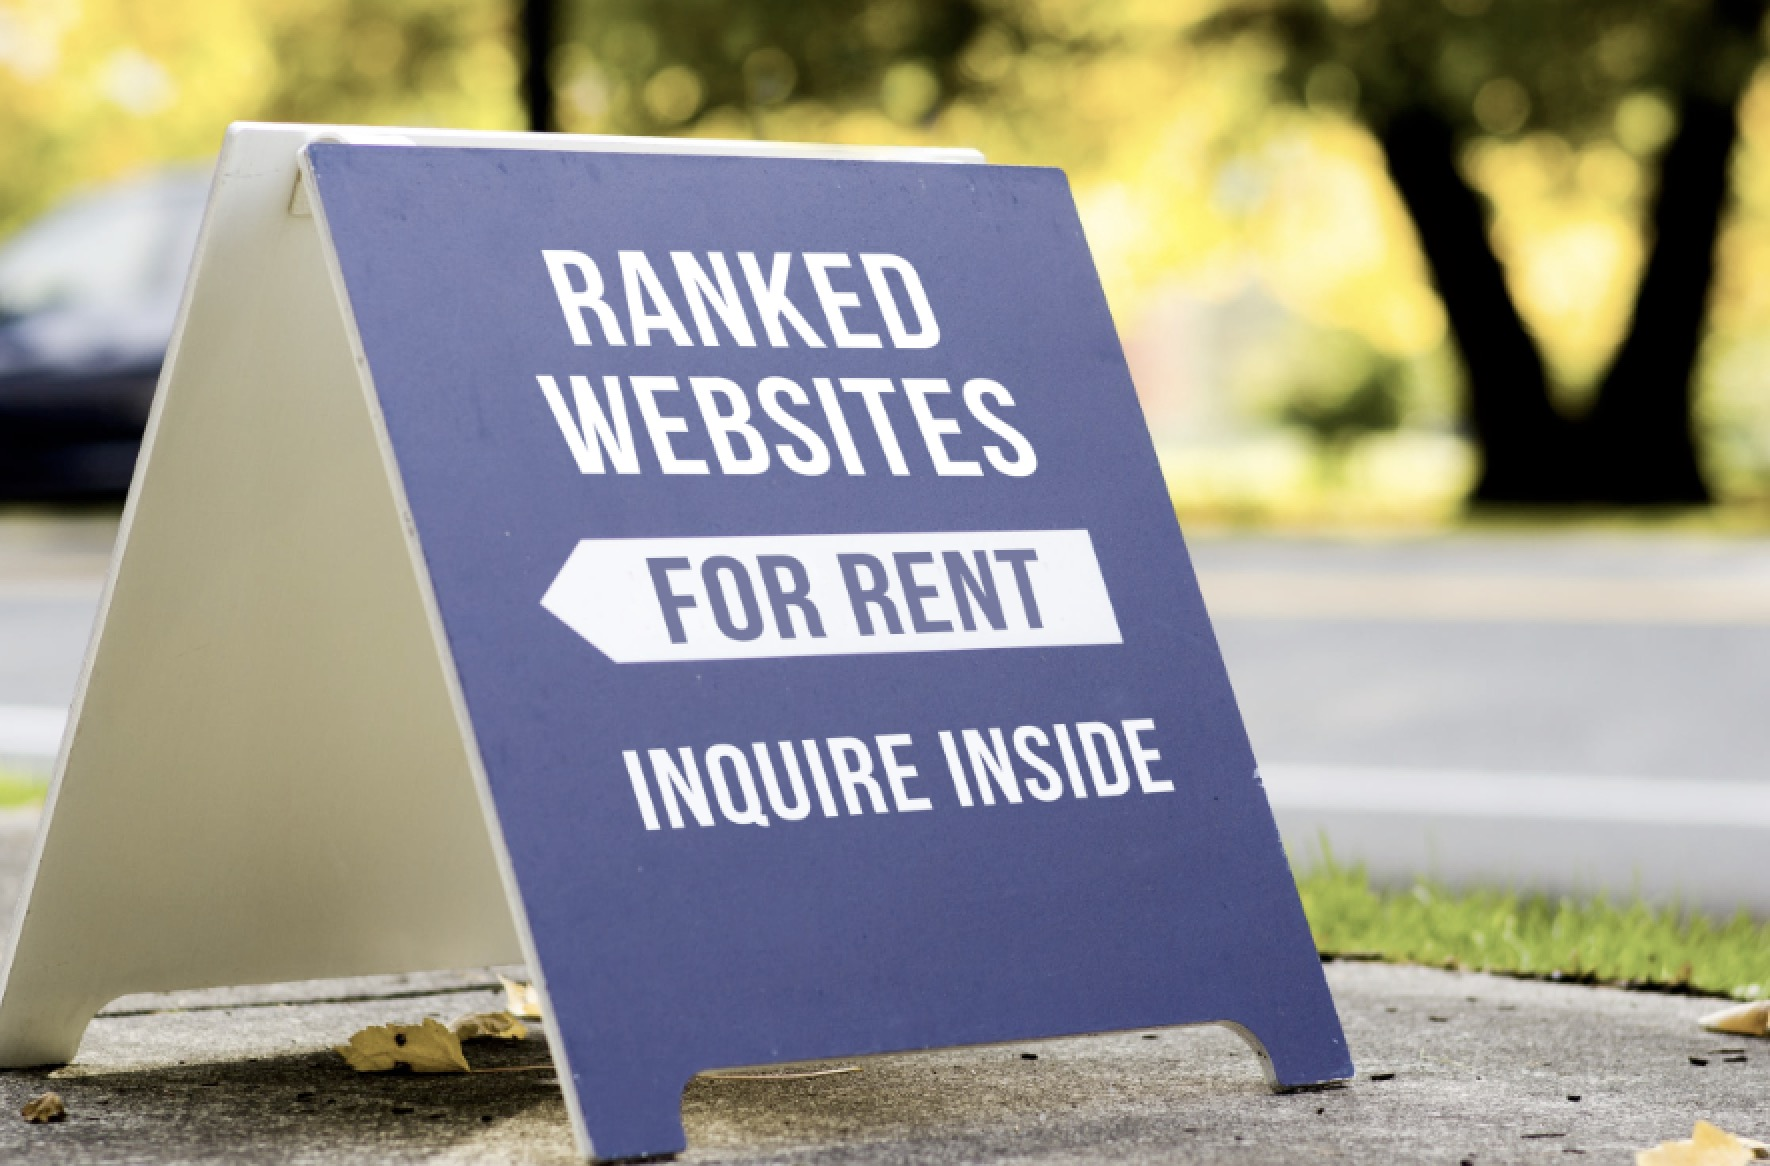 ranked website for rent sign